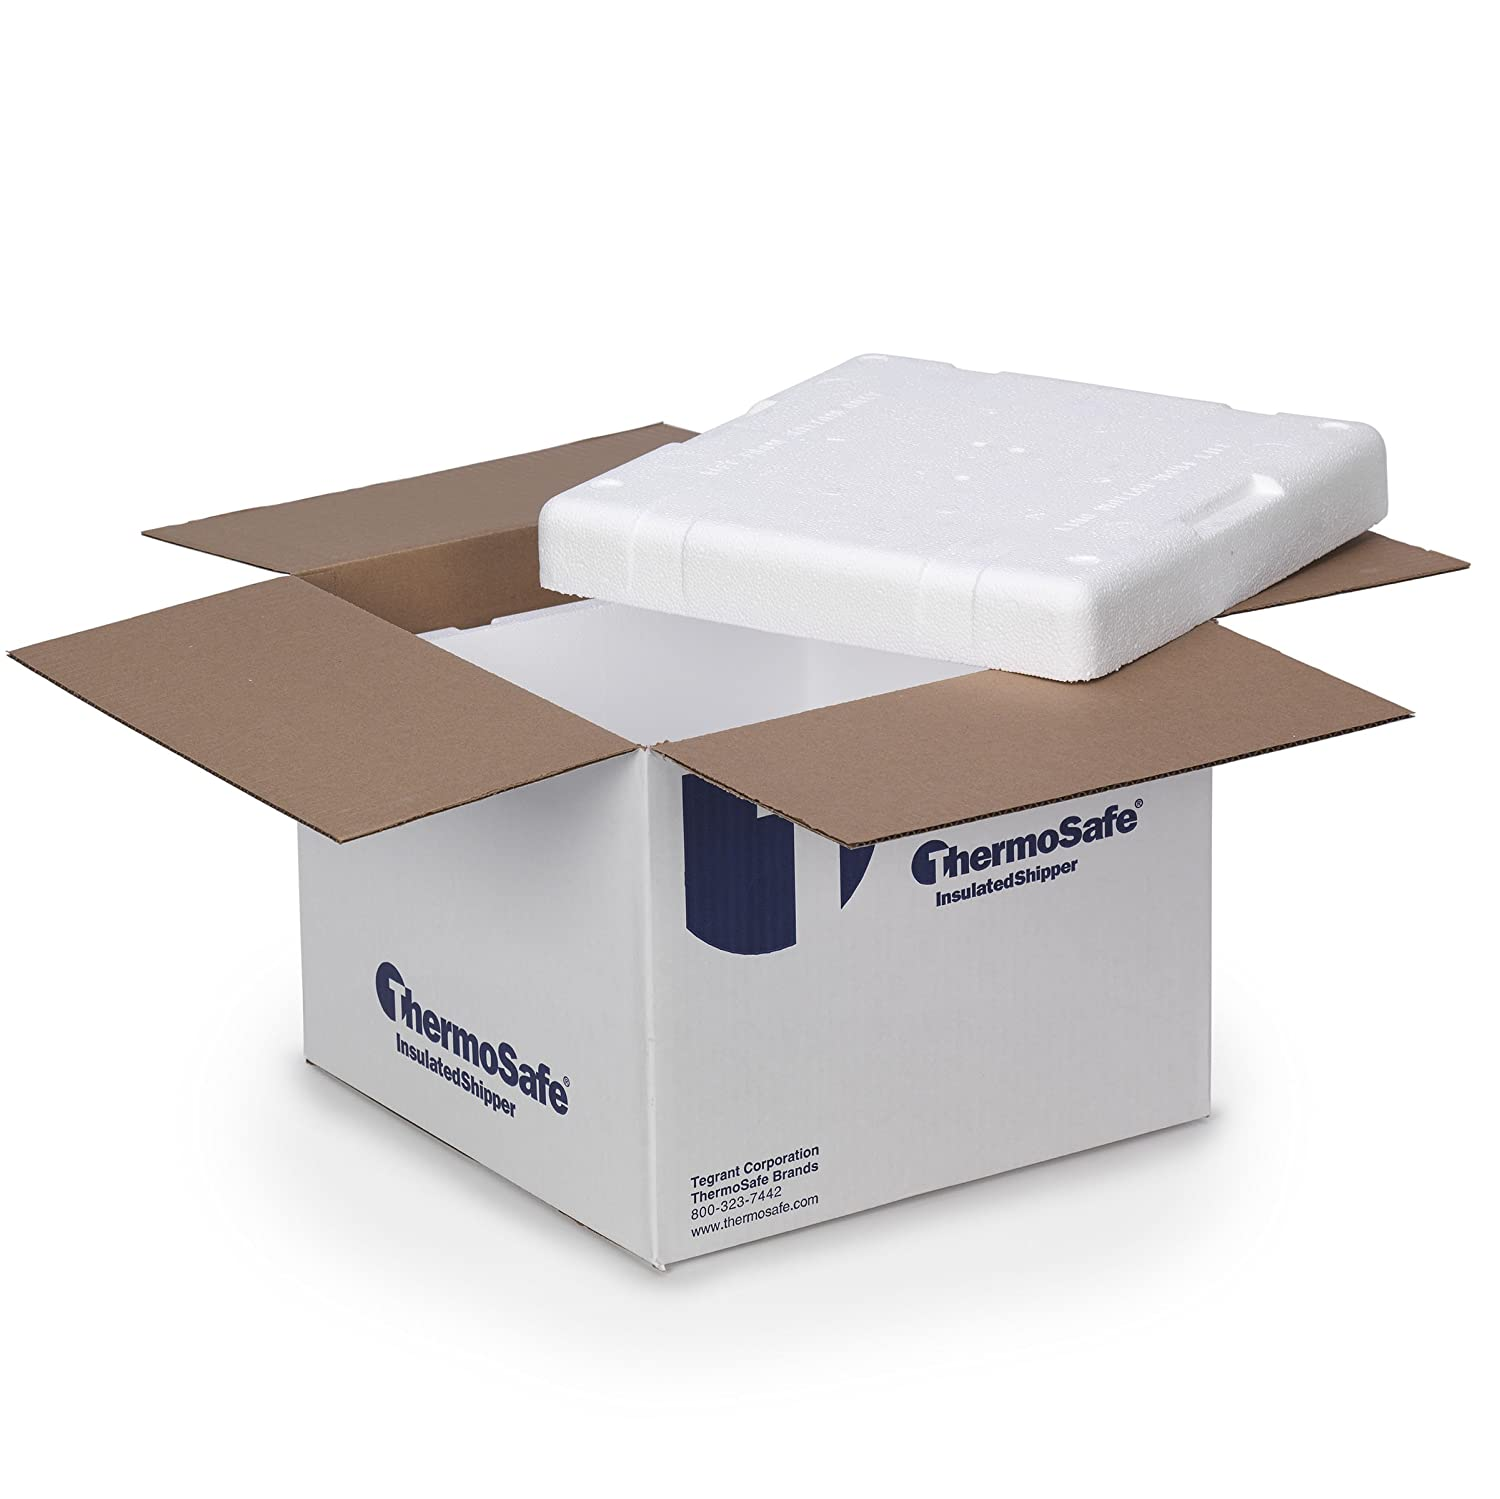 4bf7b7849de Amazon.com  Thermosafe 318 Cold Insulated Shipping Box Container Kit (12  Pack)  Industrial   Scientific